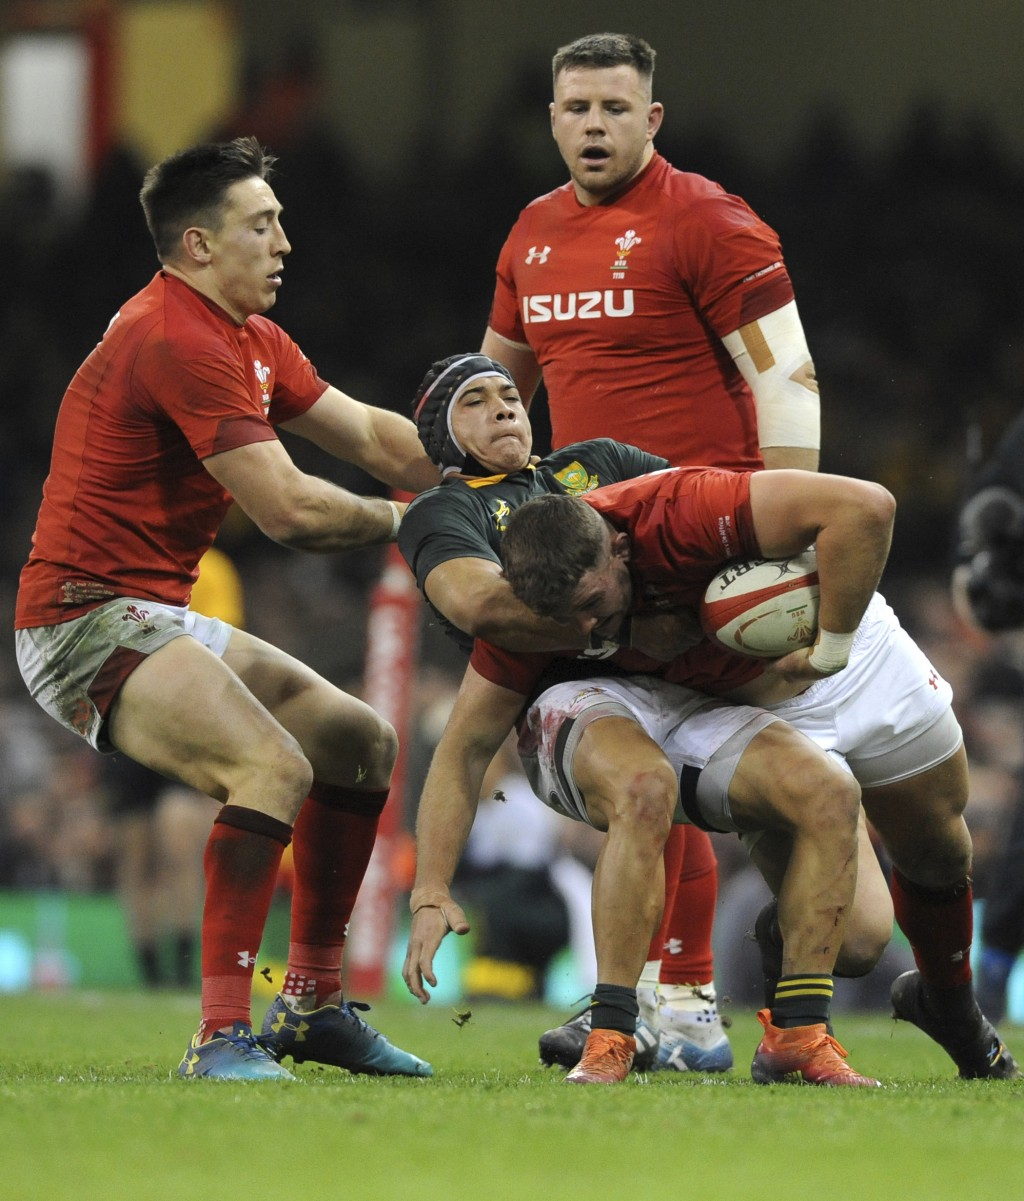 Wales Elliot Dee is tackled by South Africa's Cheslin Kolbe during the rugby union international match between Wales and South Africa at the Principal